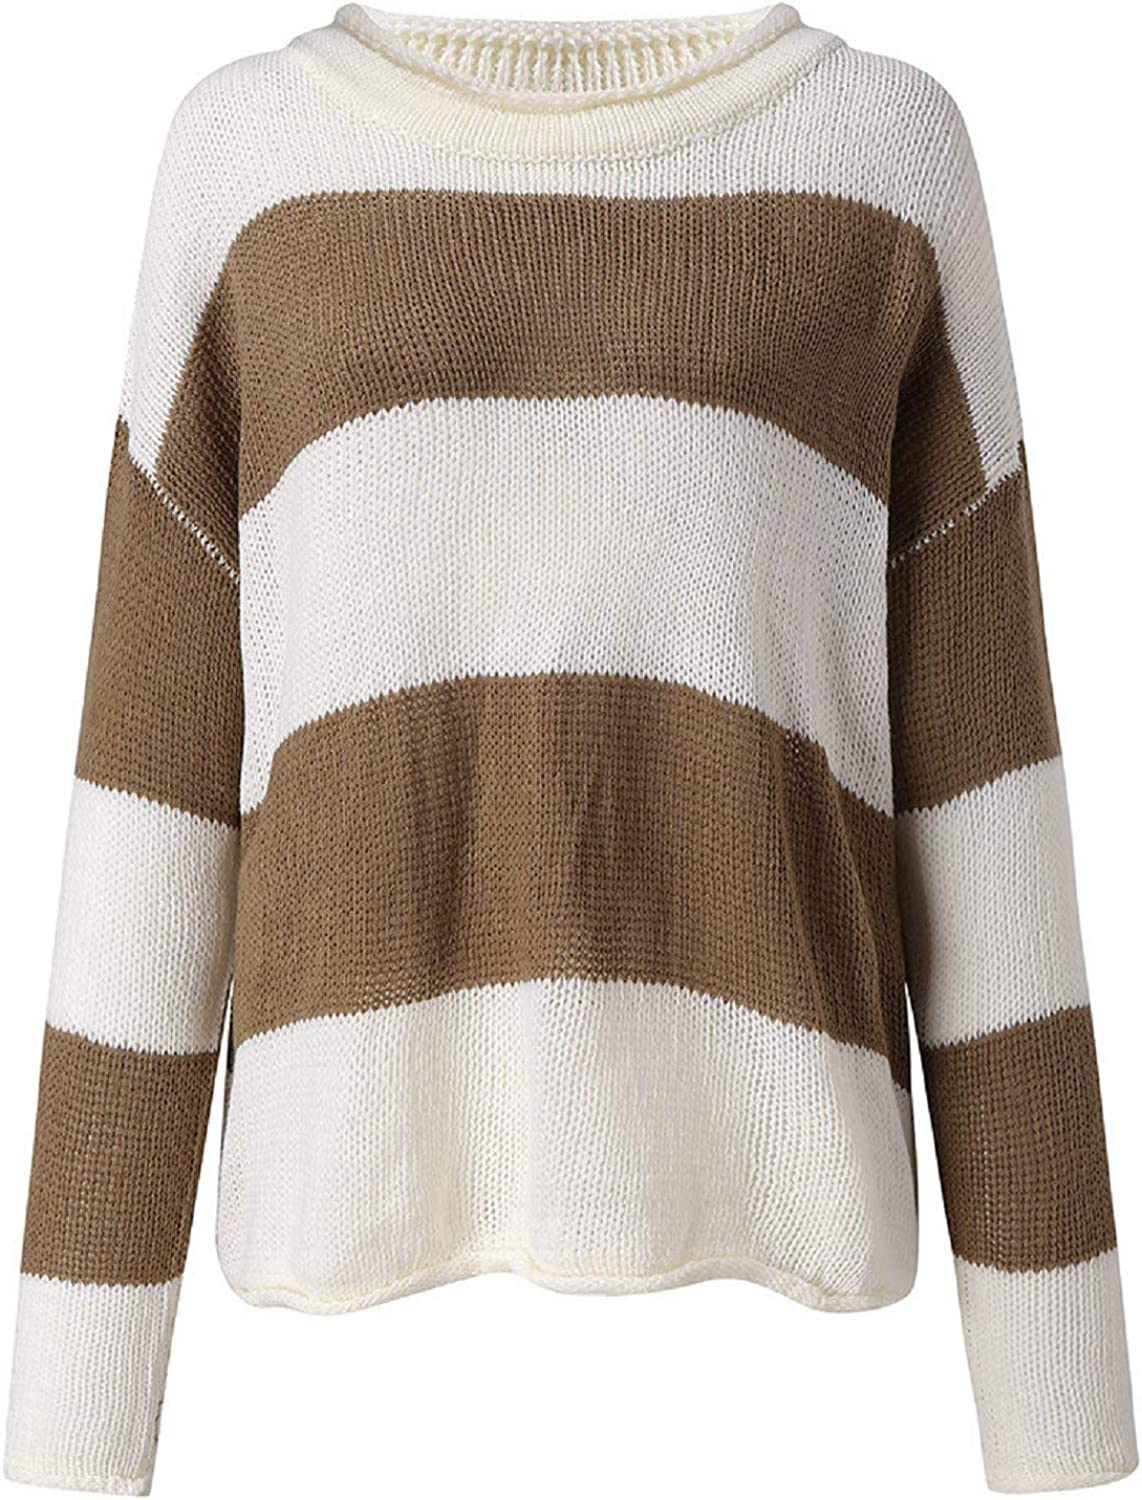 Women Color Block Splicing Sweater, Tsmile Knitted Long